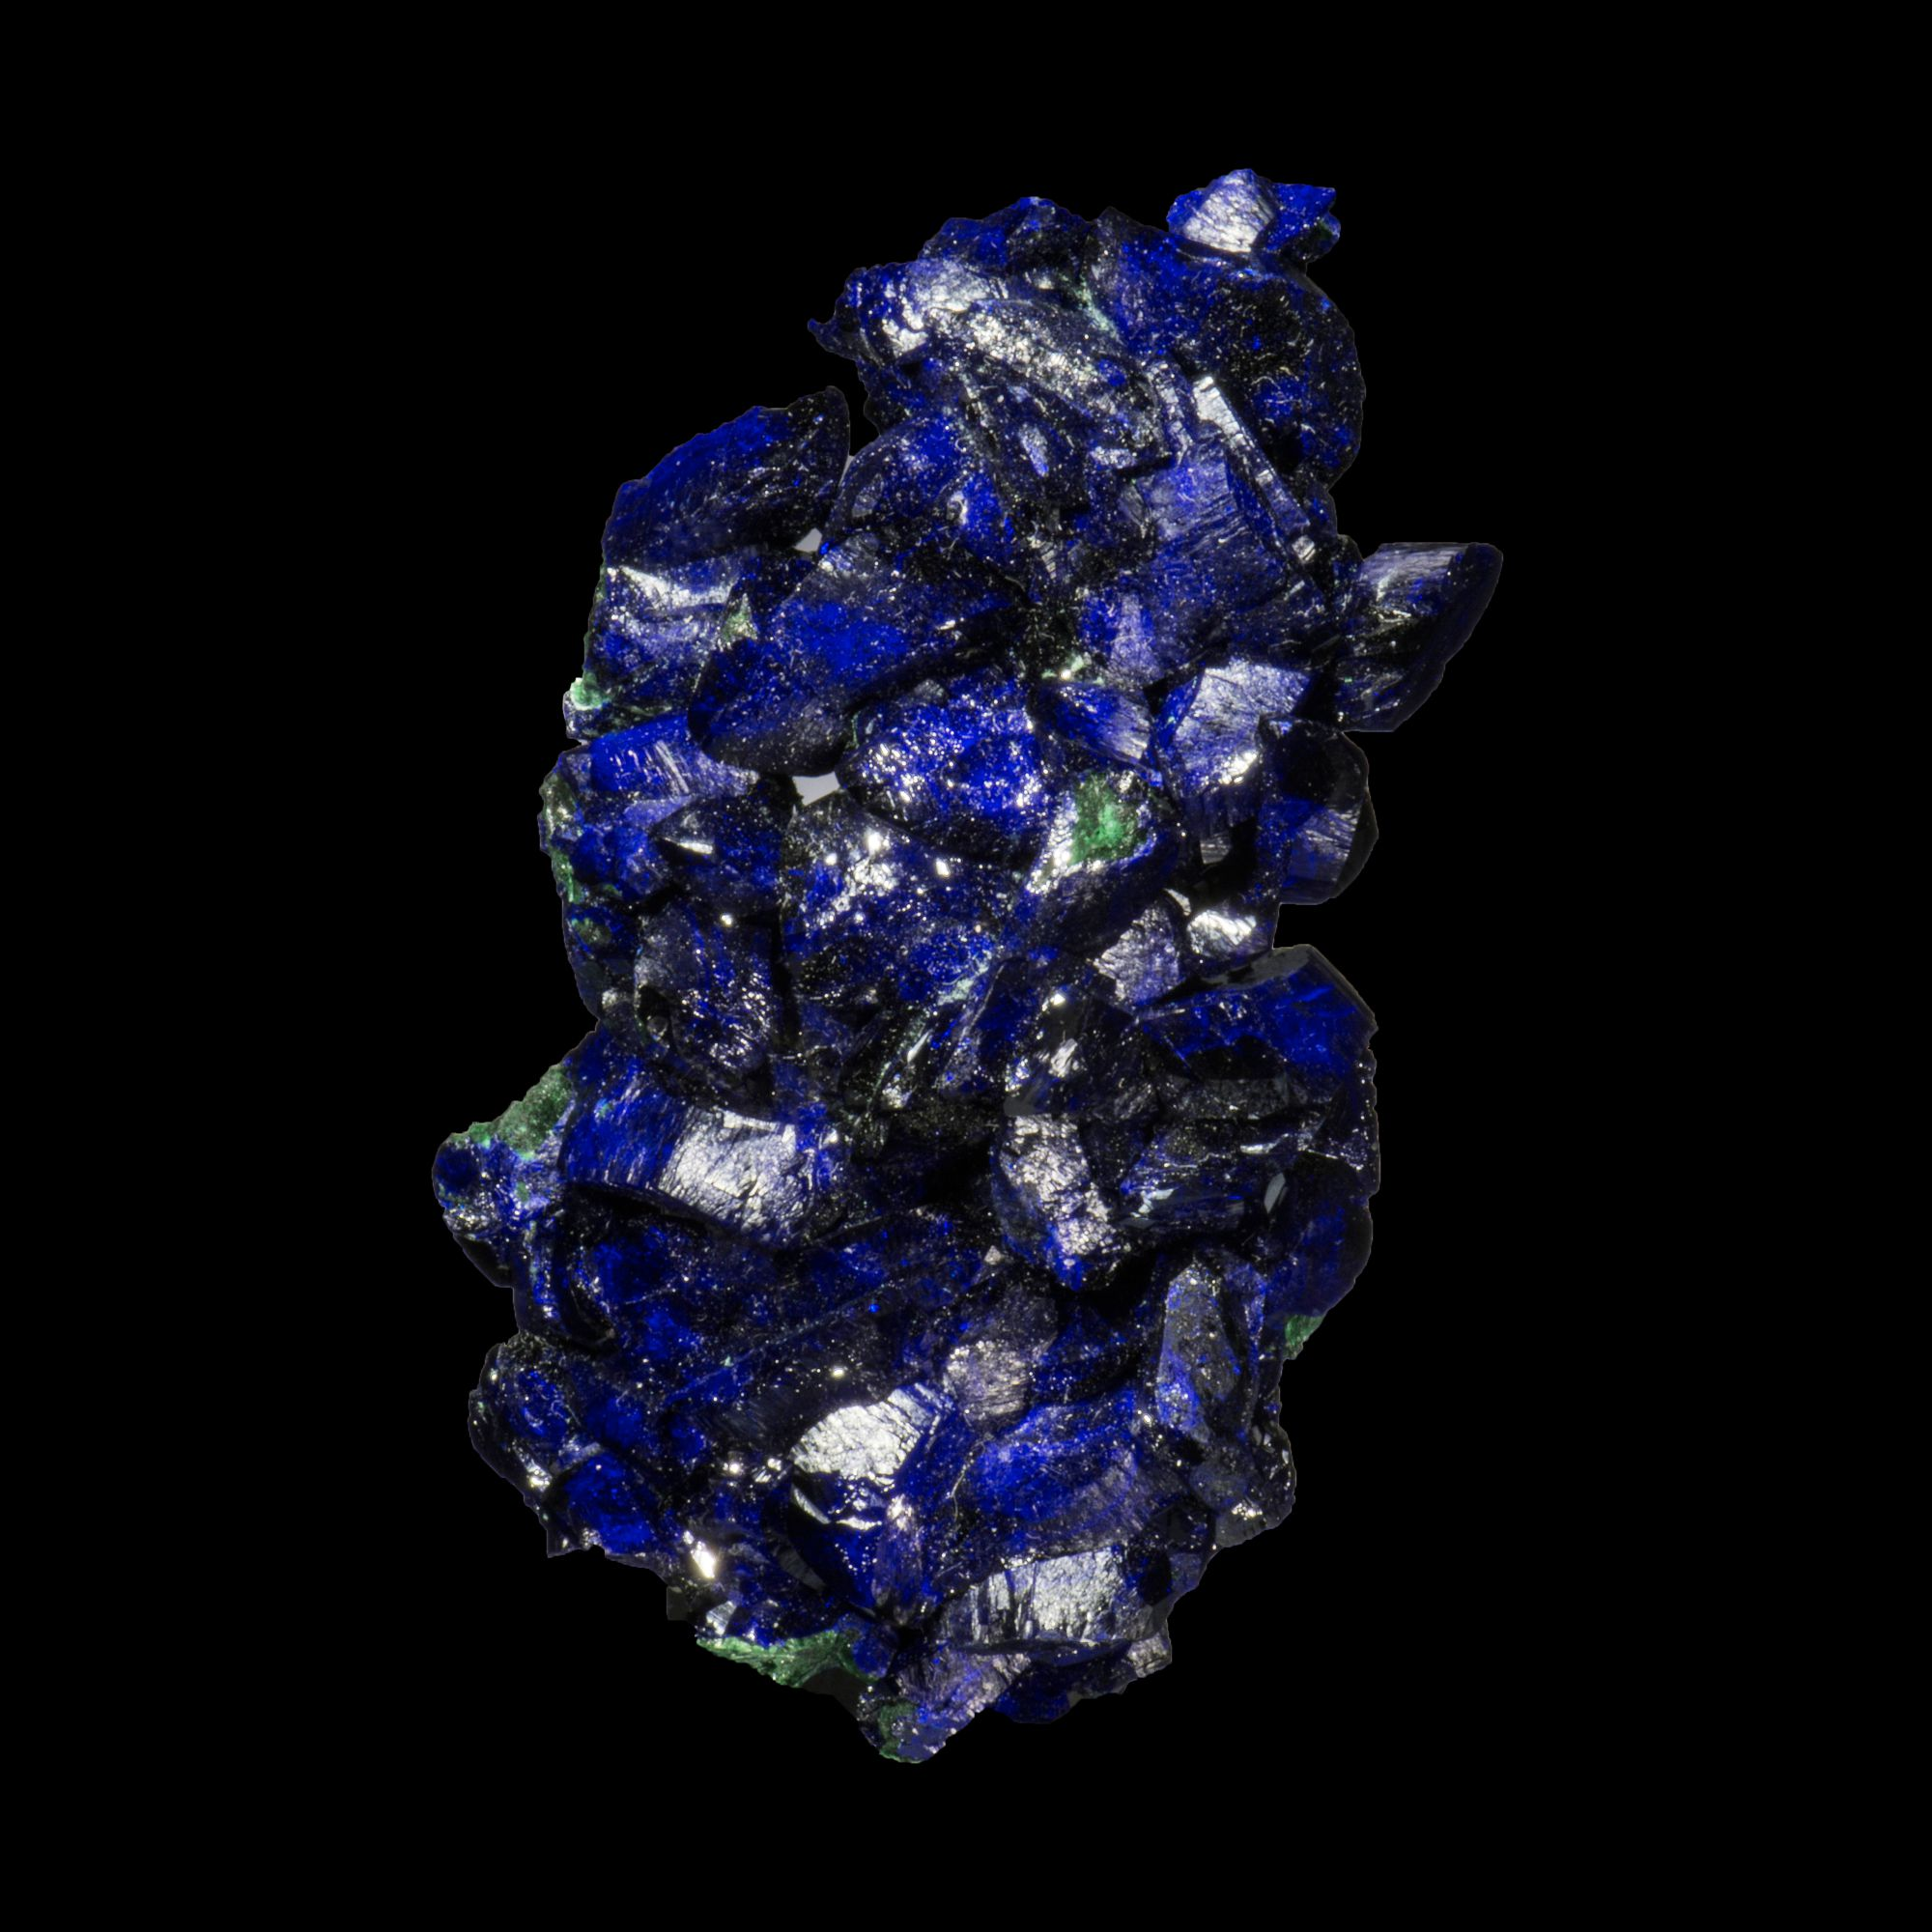 Azurite with Malachite from Mexico, Sonora Milpillas Mine